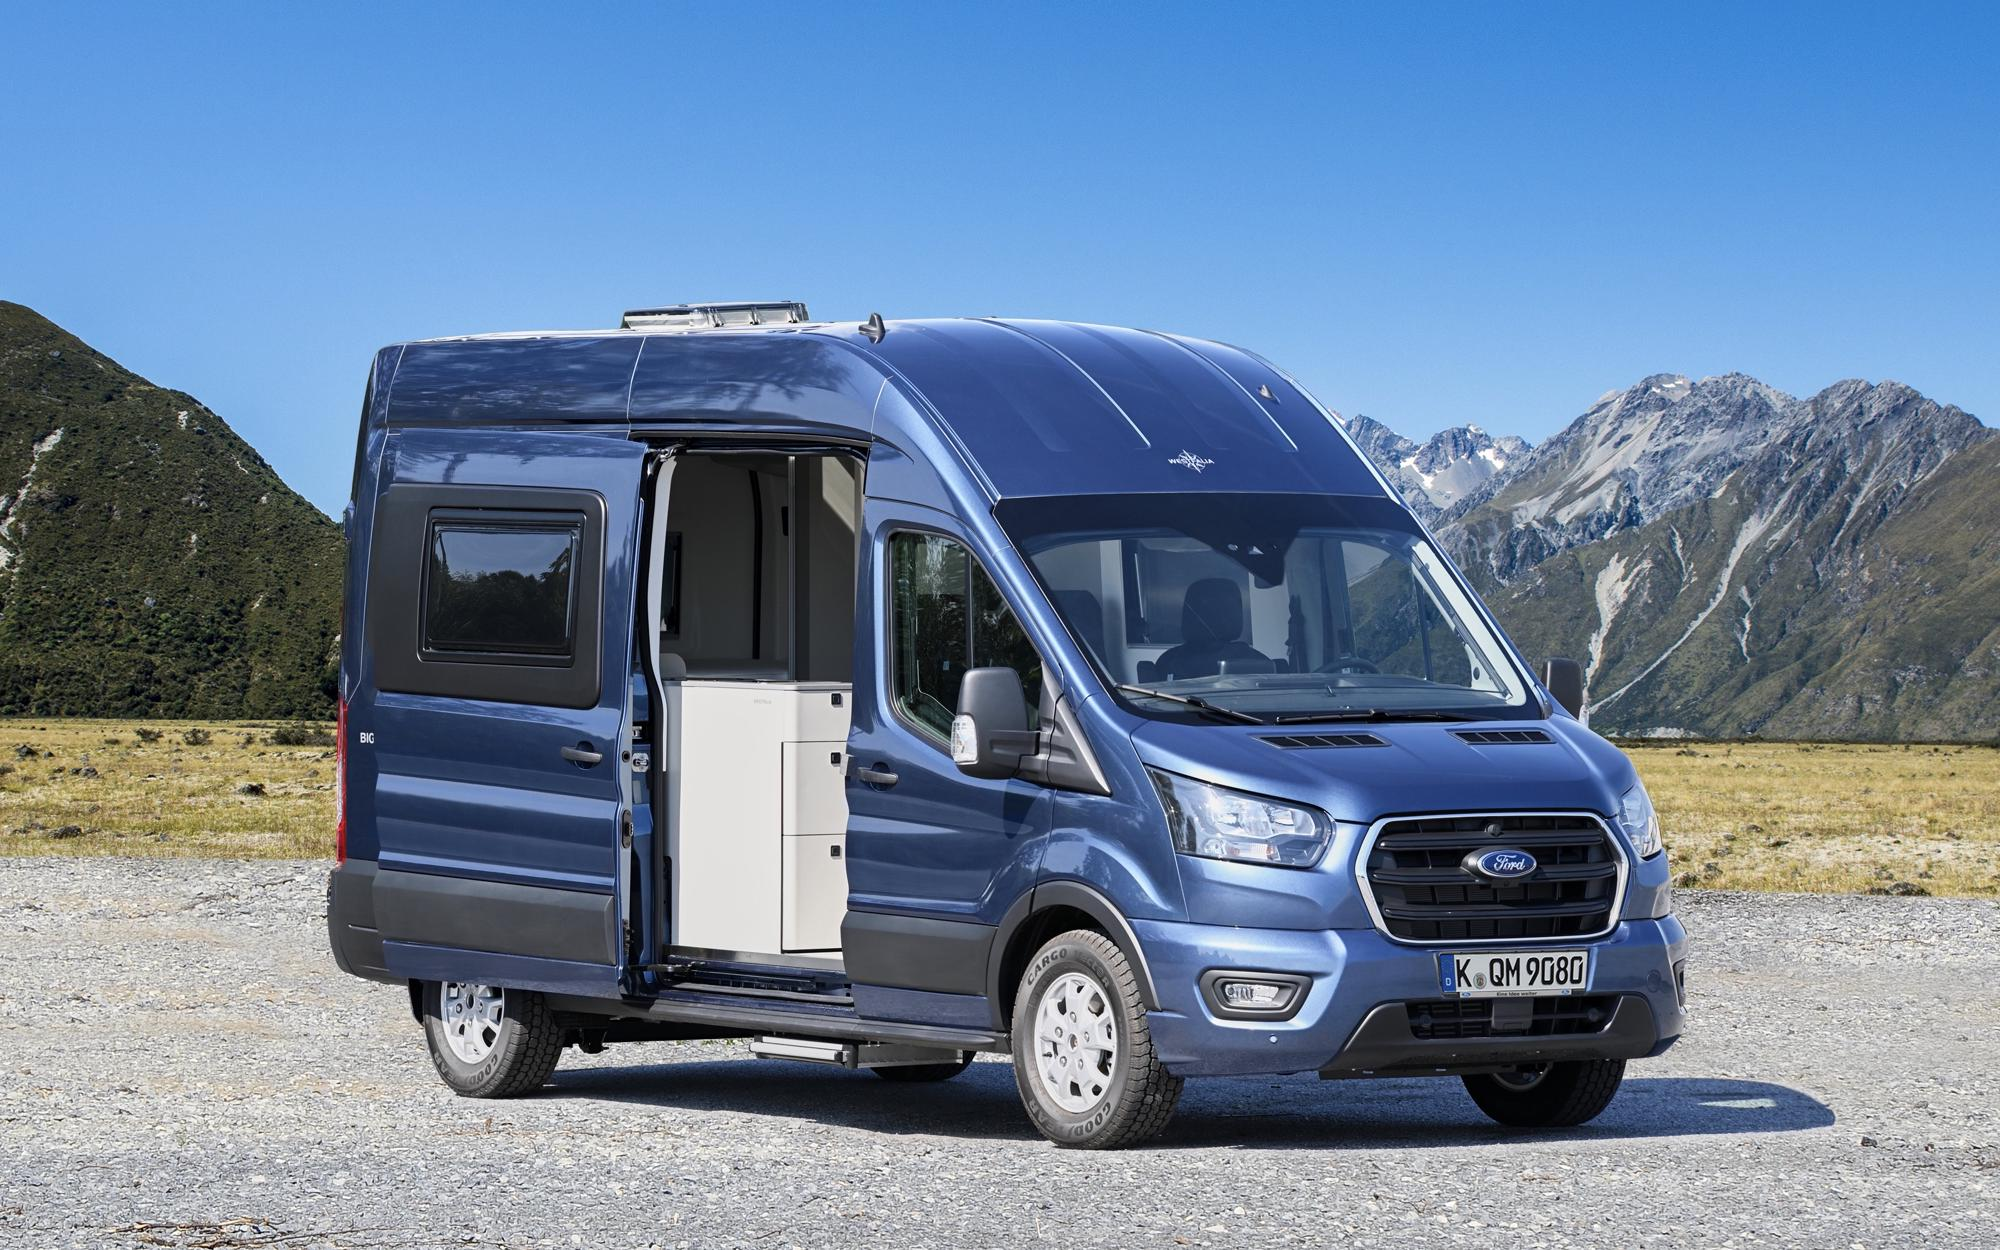 The Ford Big Nugget concept van